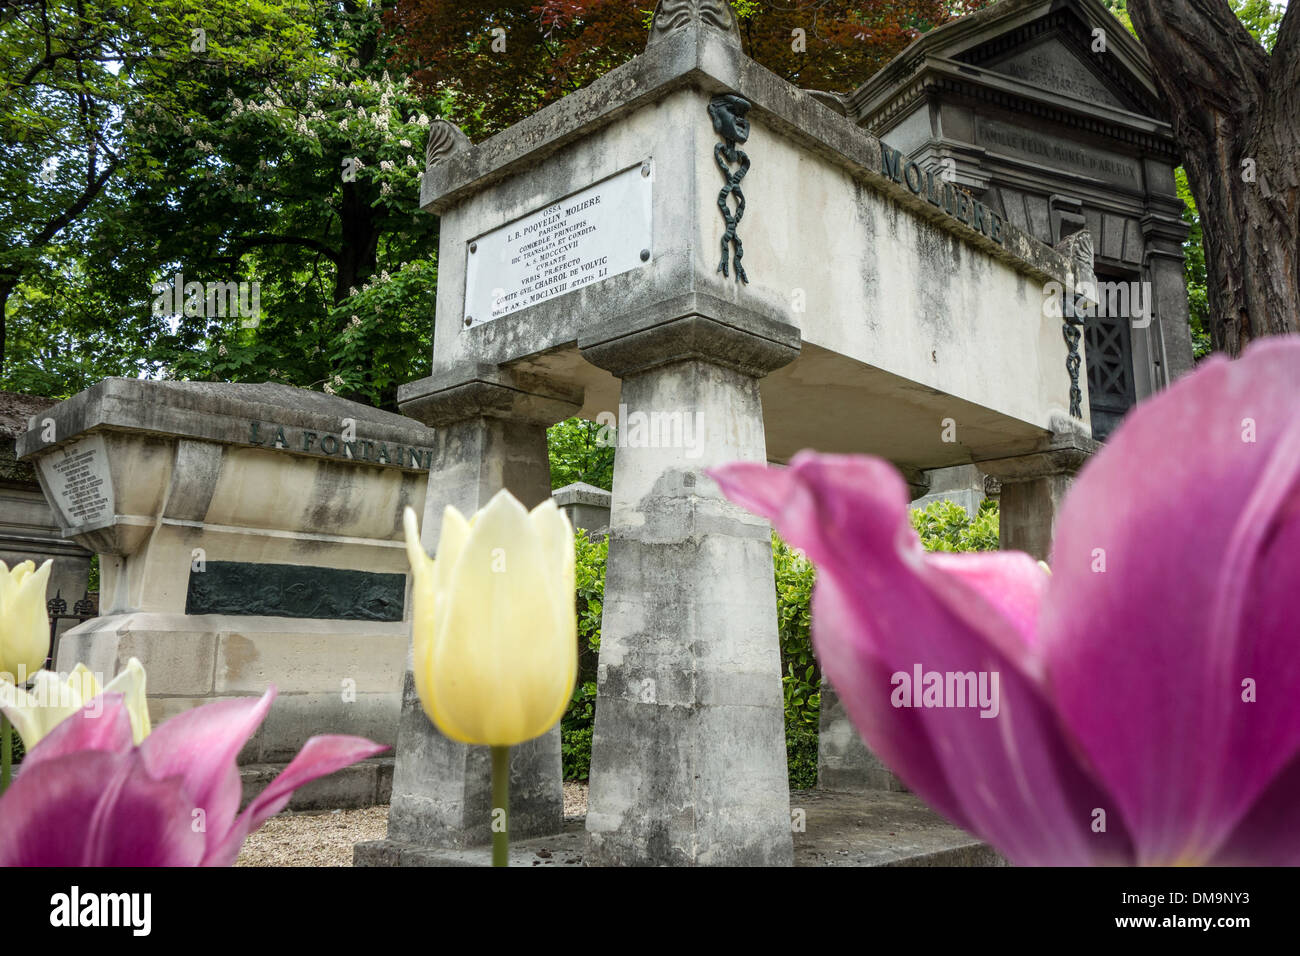 TOMBS OF THE GRAVES FOR THE PLAYWRIGHT AND ACTOR JEAN-BAPTISTE POQUELIN, CALLED MOLIERE, AND THE WRITER JEAN DE LA FONTAINE, PERE-LACHAISE CEMETERY, PARIS 20TH ARRONDISSEMENT, FRANCE - Stock Image